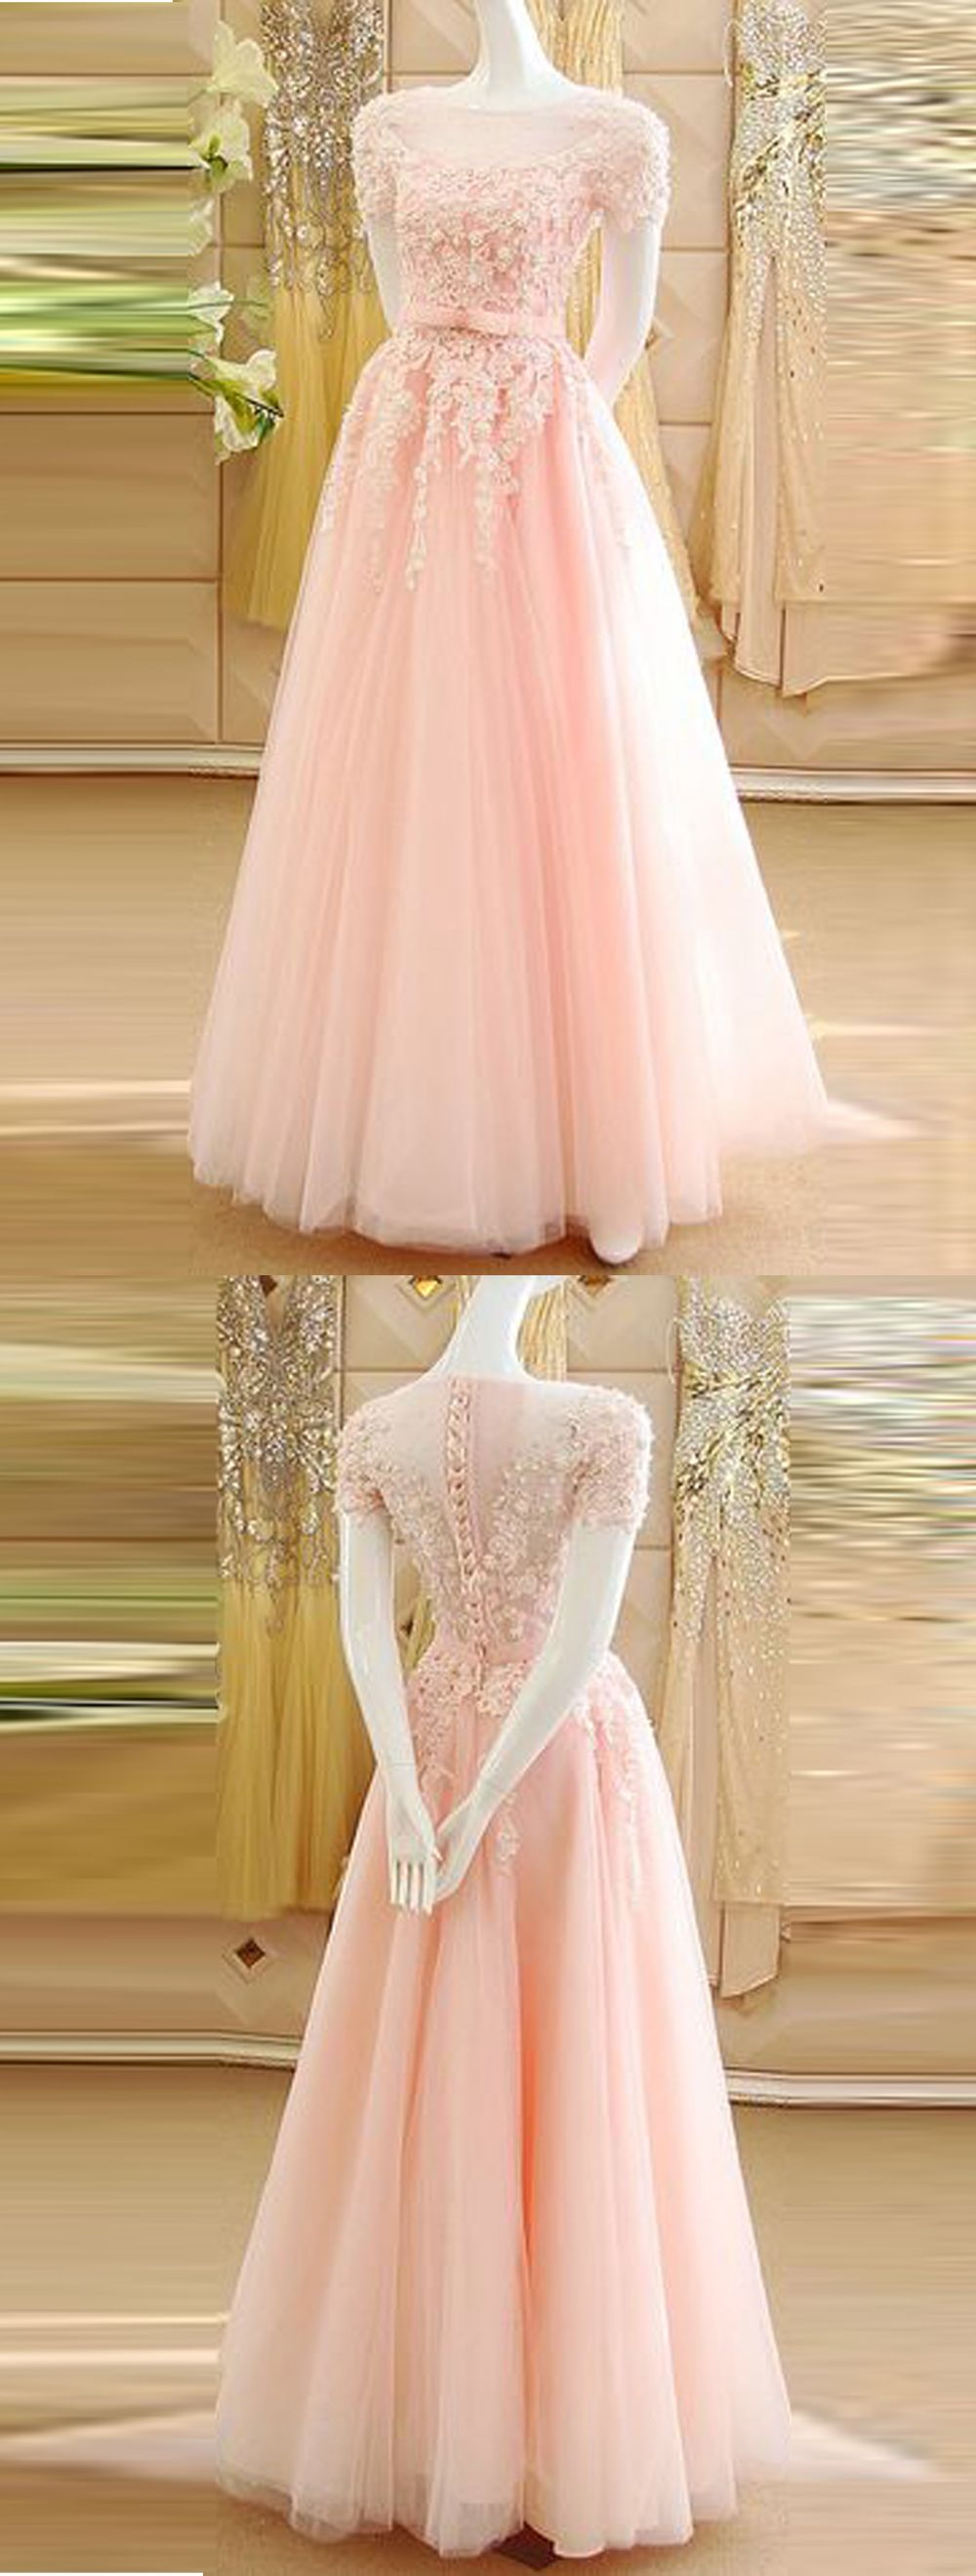 Aline bateau short sleeves pink prom dress with appliques sash